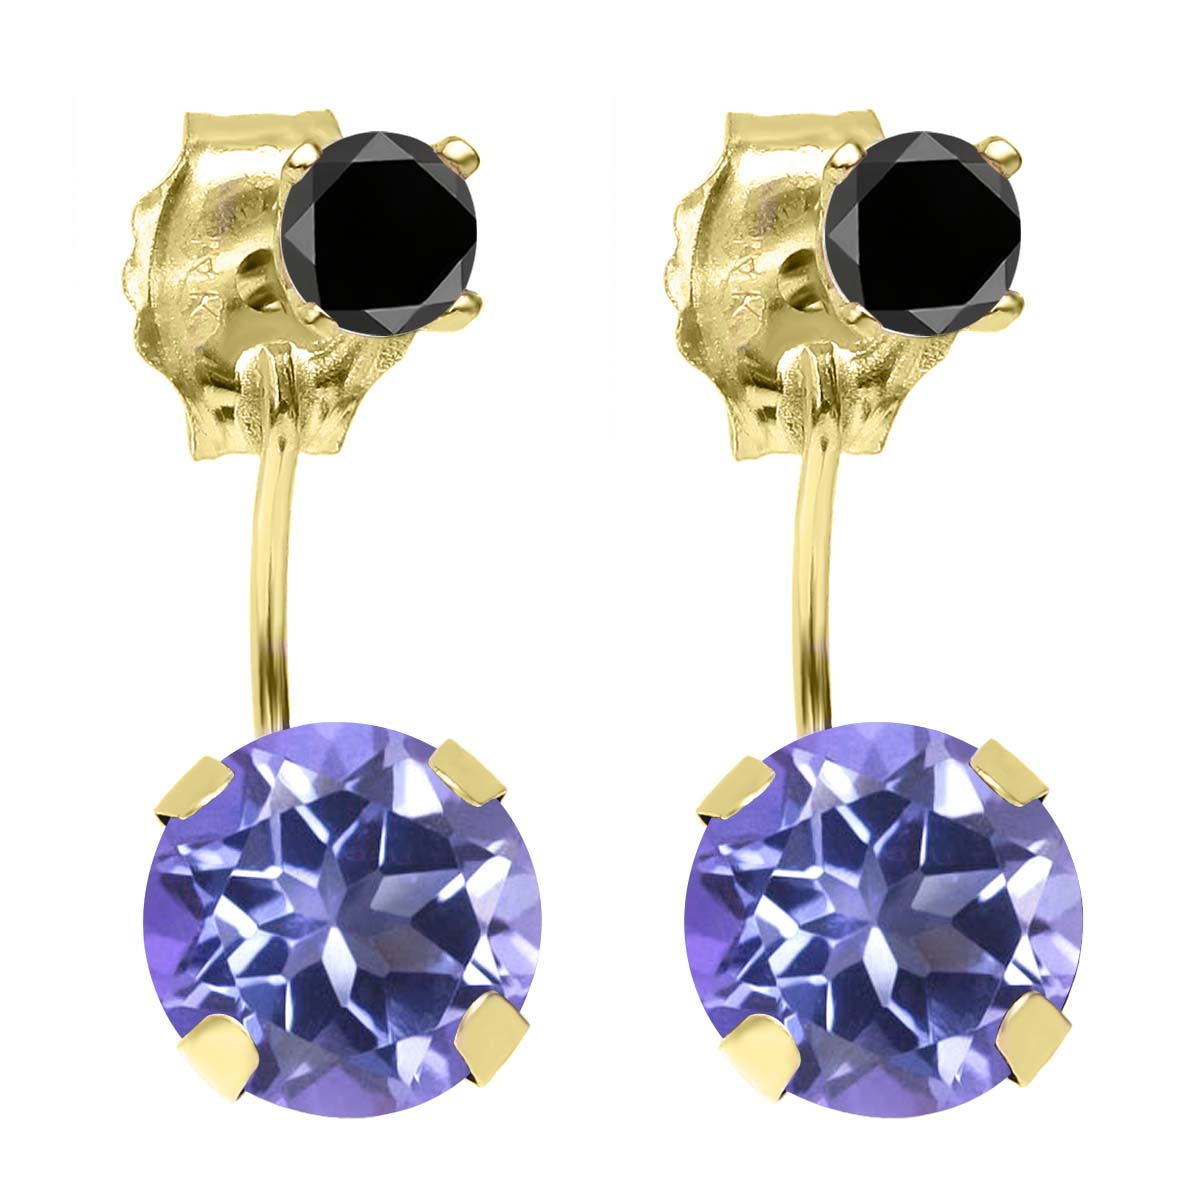 2.24ctw Round Blue Mystic Topaz Black Diamond 14K YG Top&Bottom Earrings